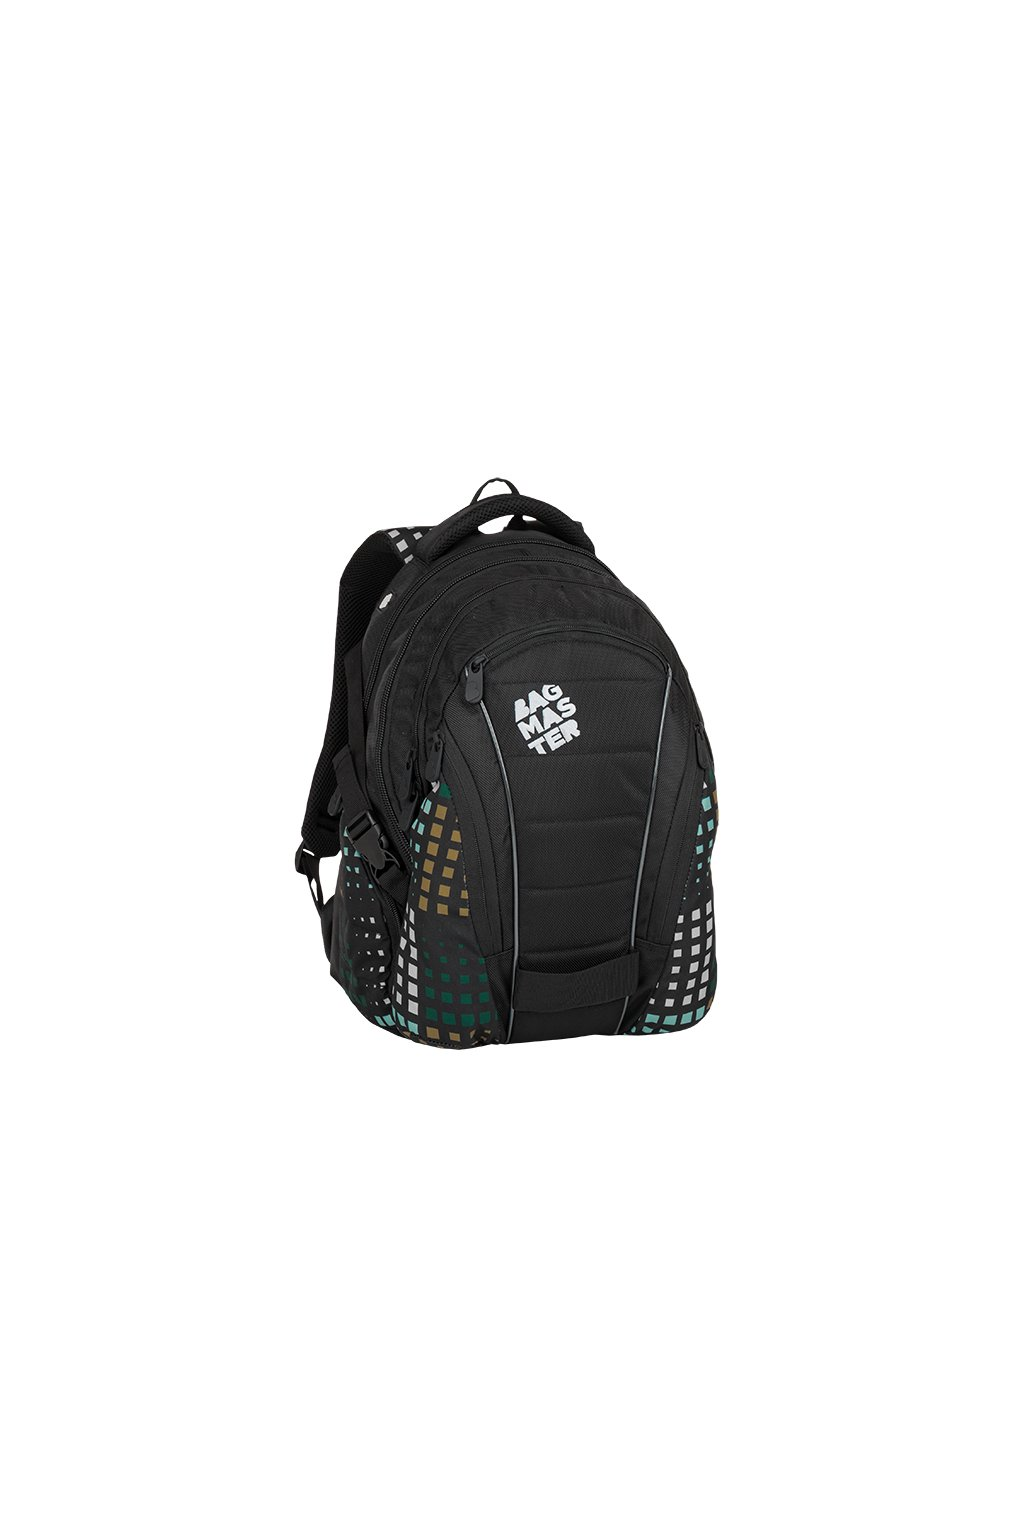 BAG 8D BLACK GREEN GREY 1